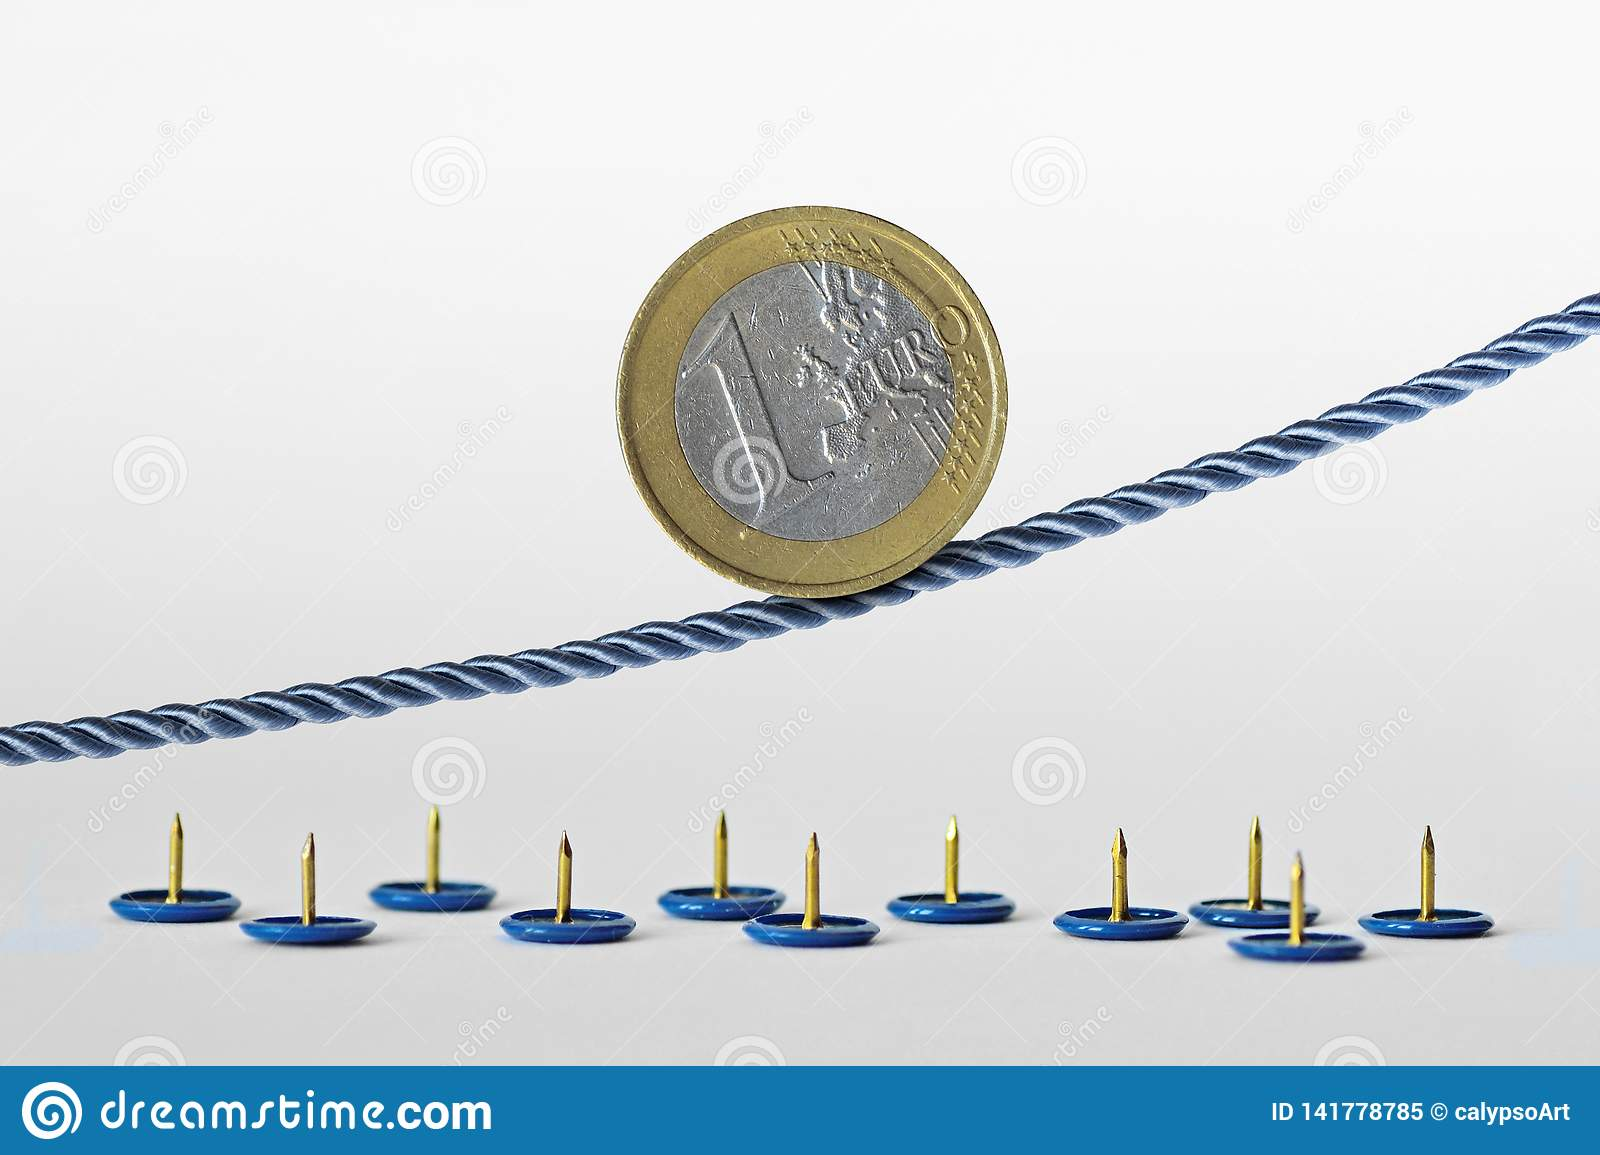 Euro coin on rope over push pins - Concept of upward trend of euro currency and euro currency risk